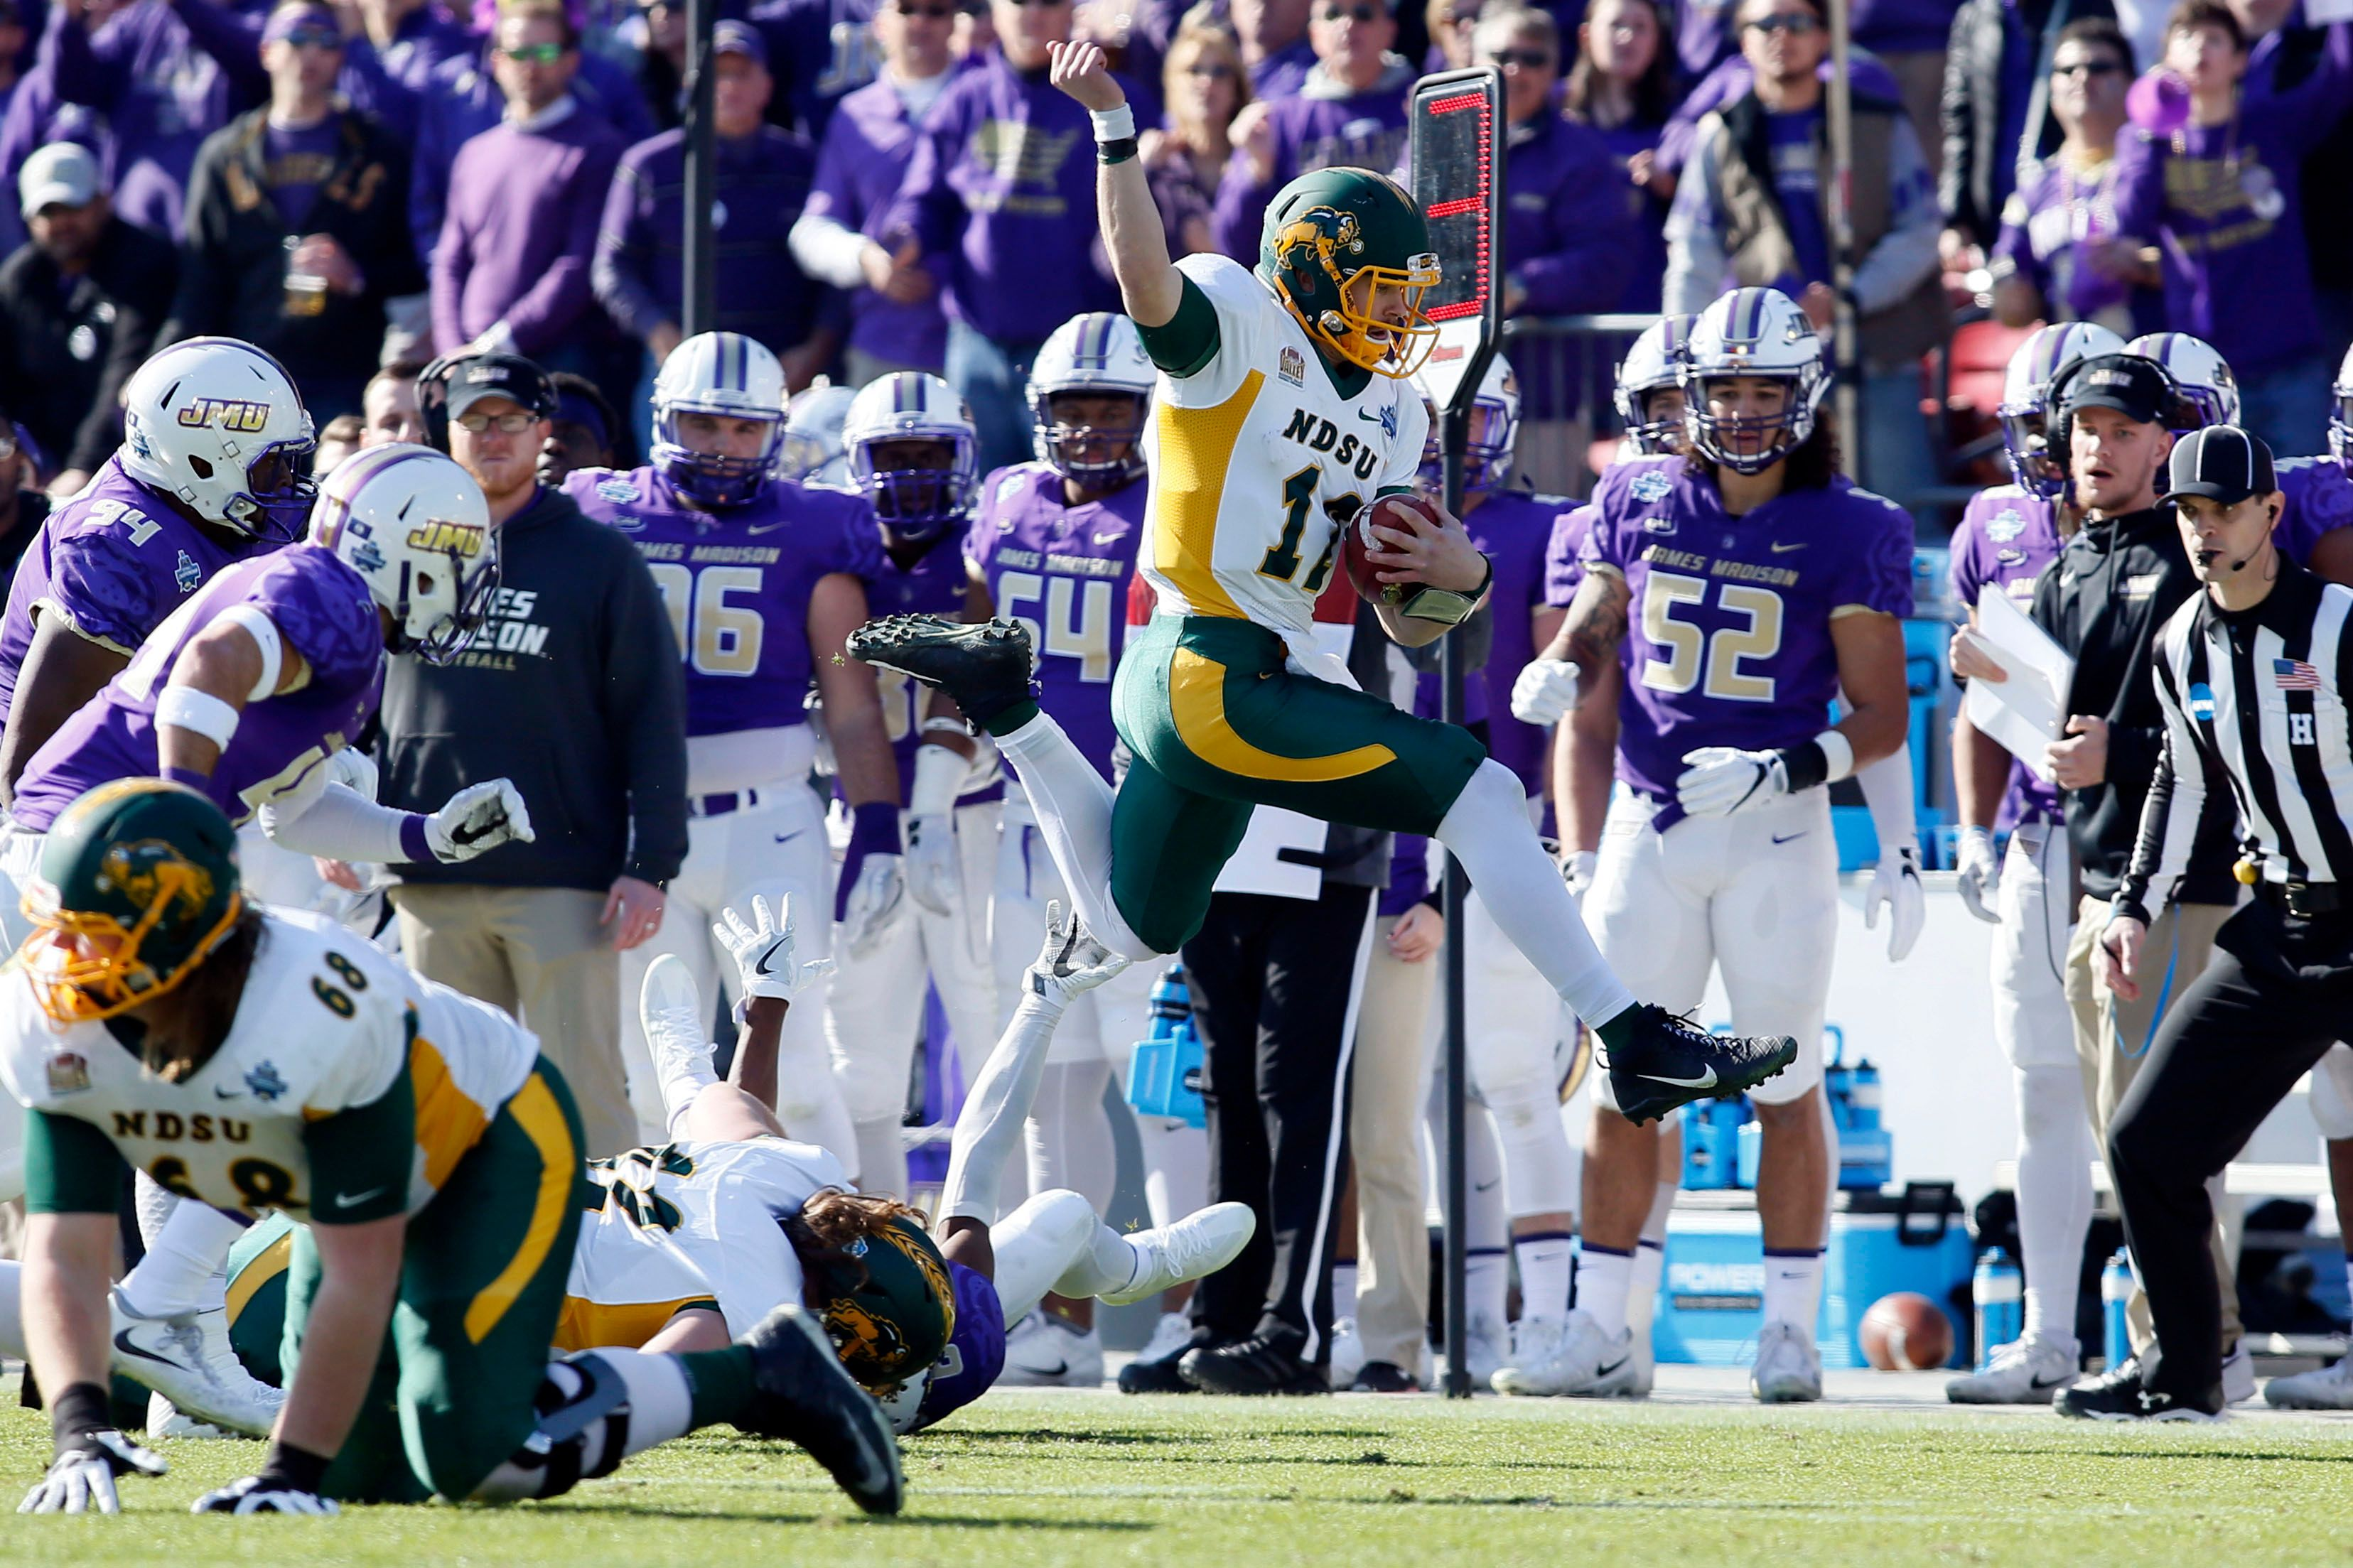 North Dakota State takes back FCS title, defeats James Madison 17-13